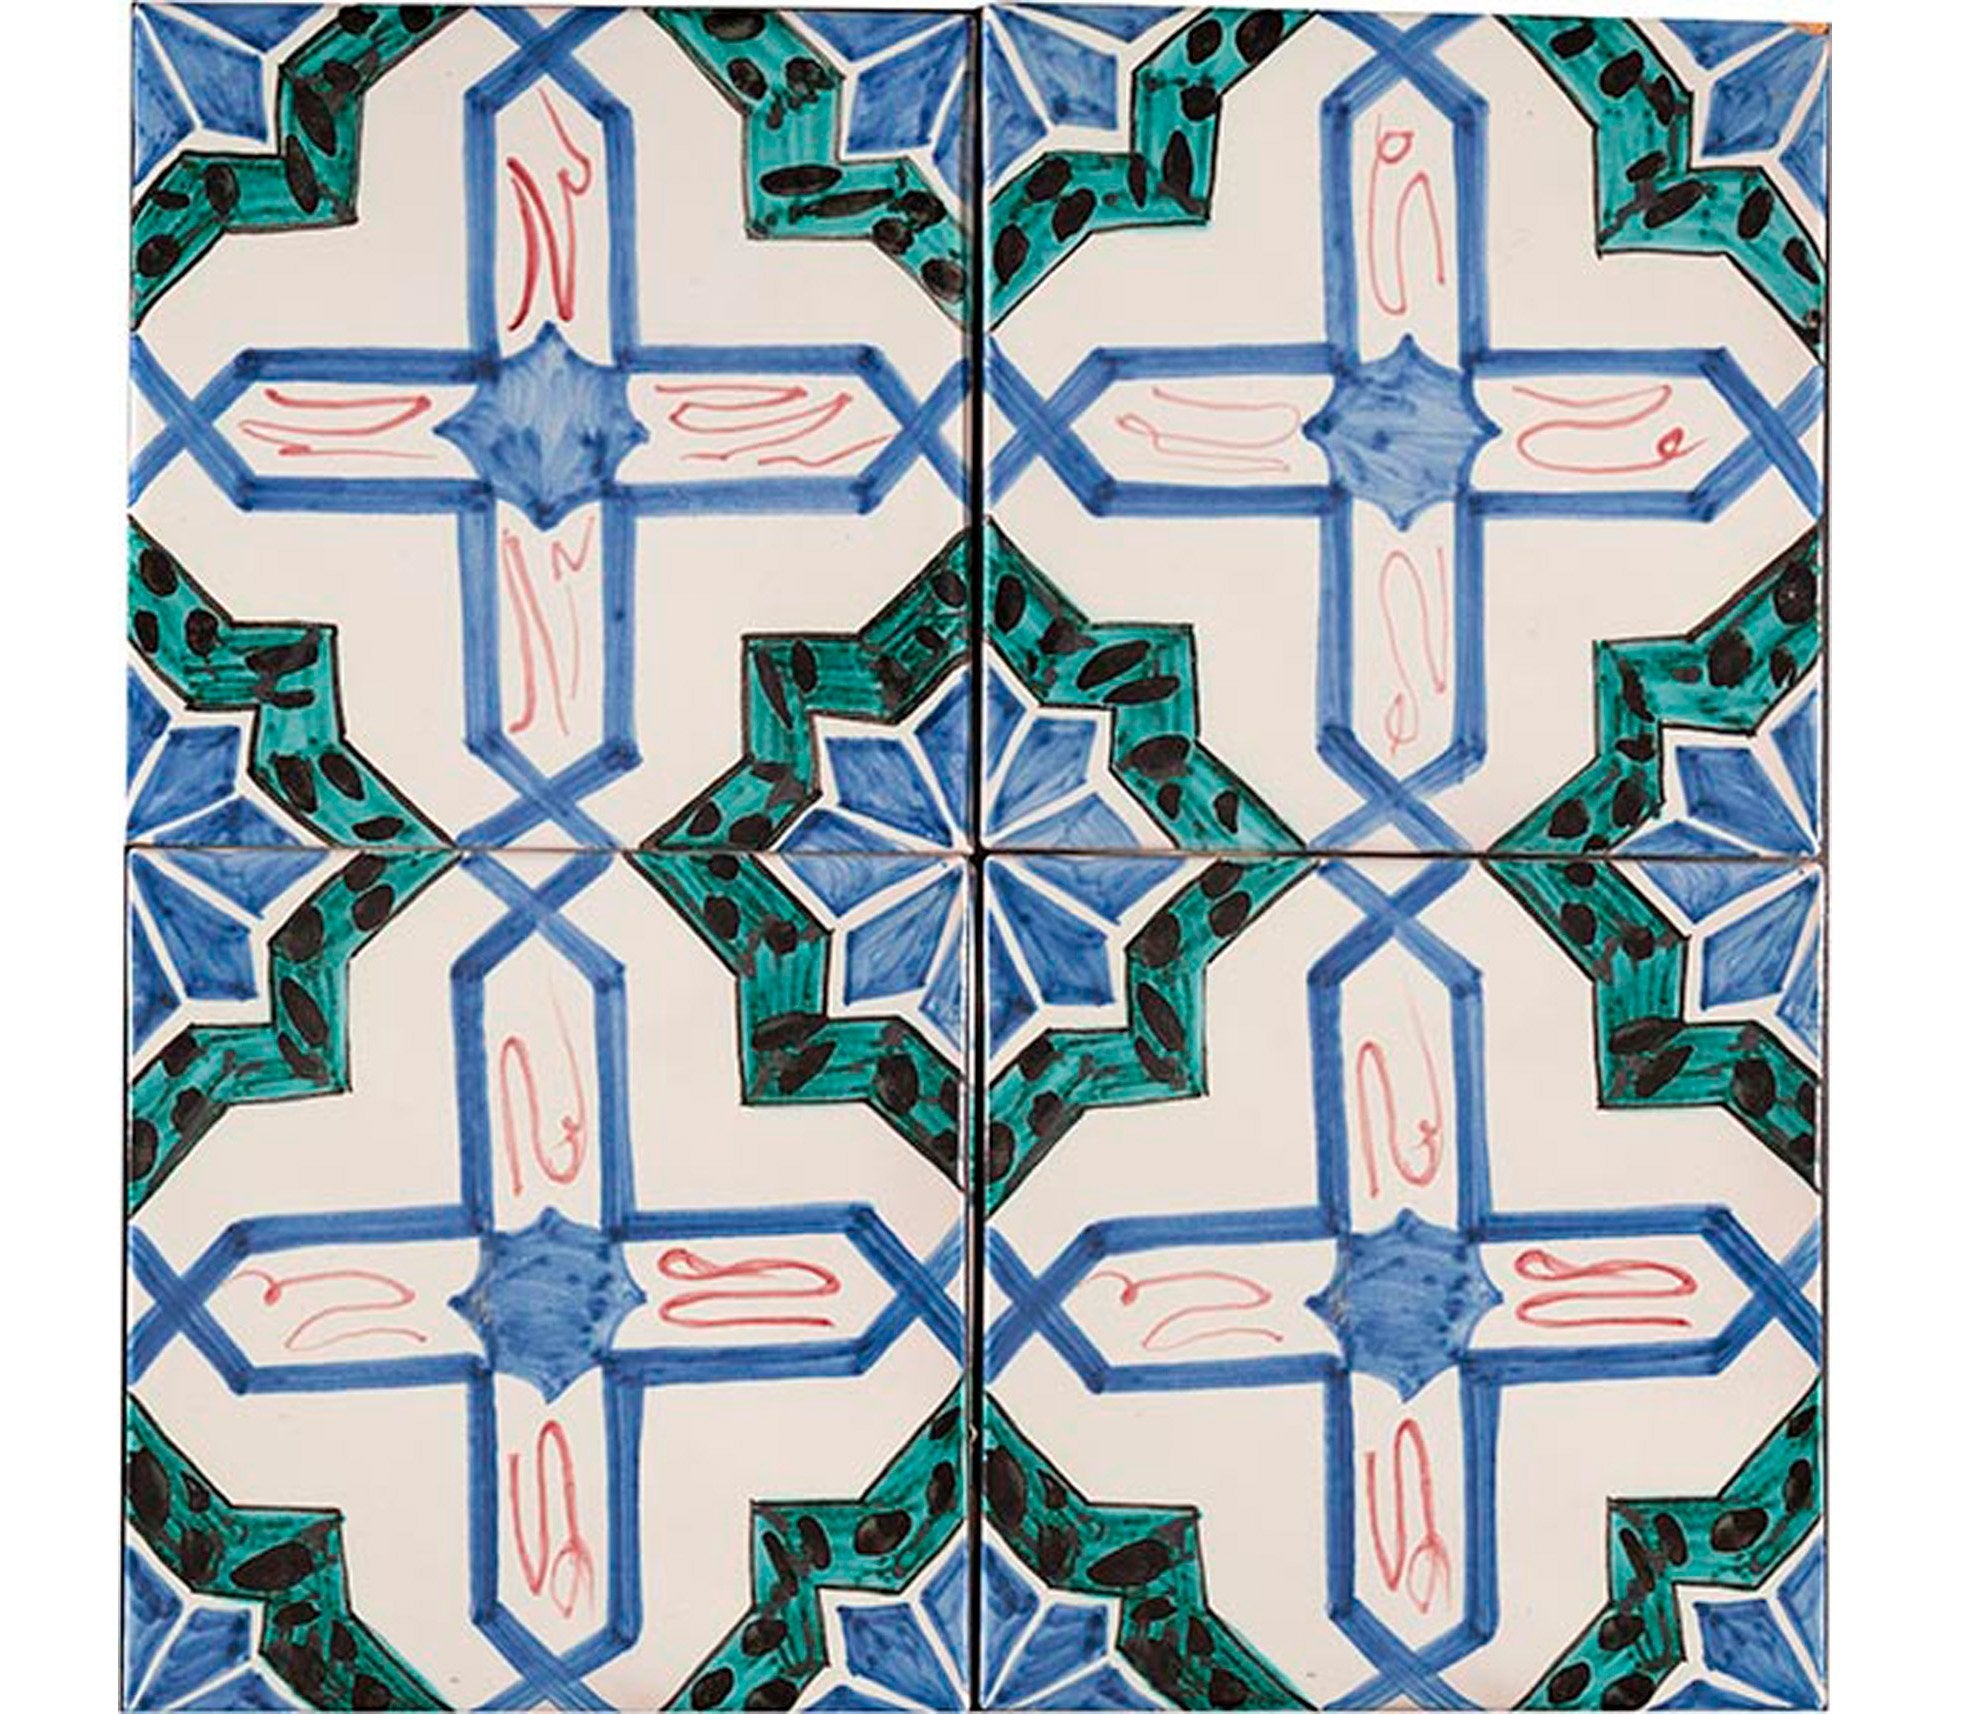 Series S Handpainted Tiles Product Image 63